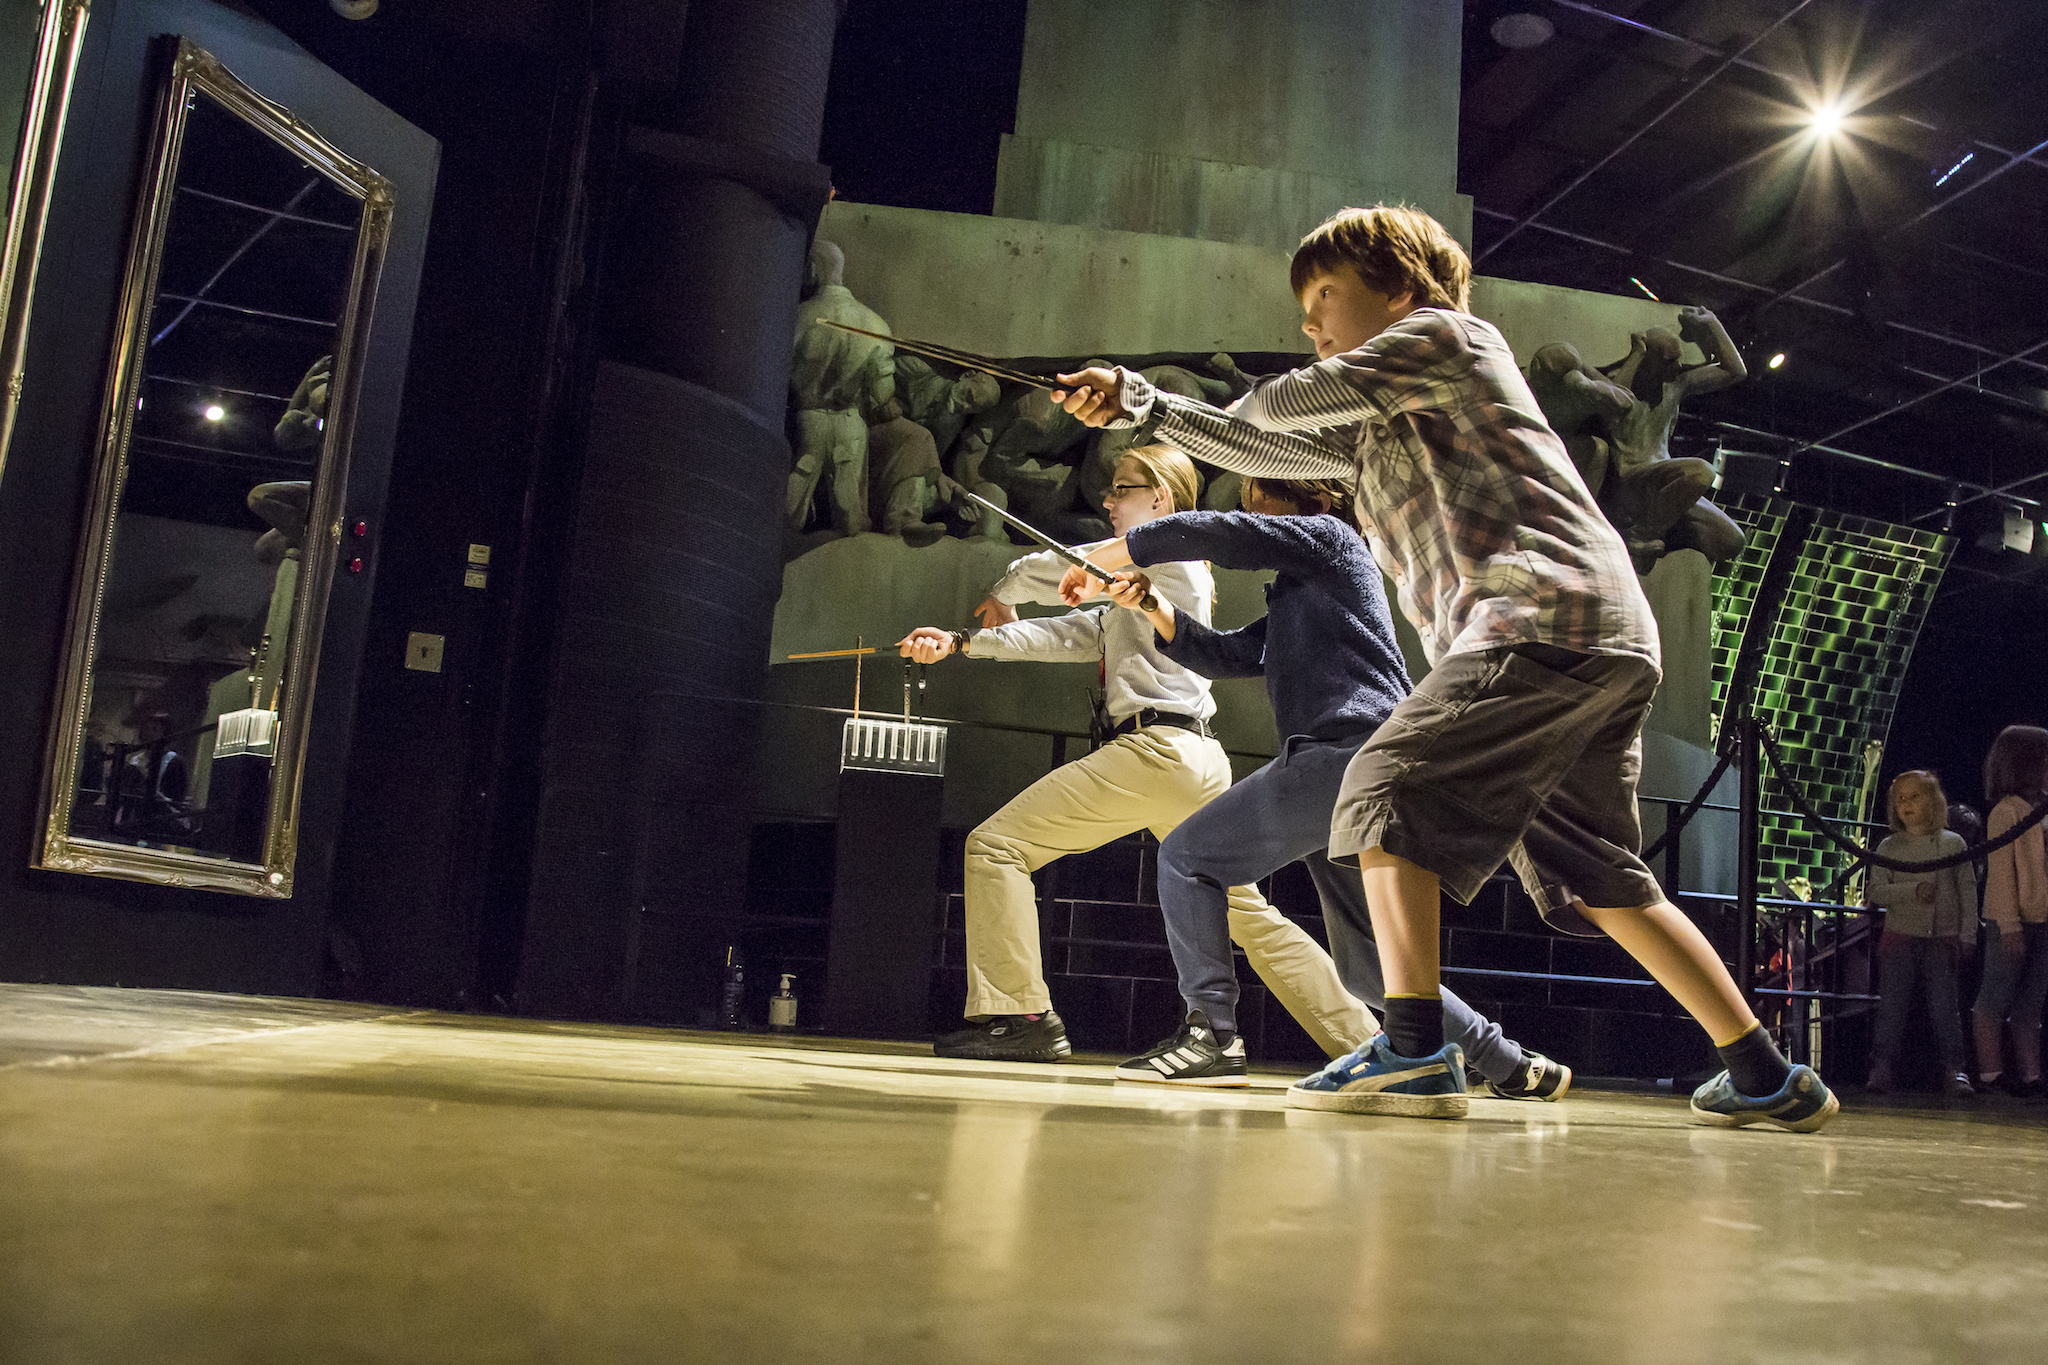 Warner Bros Harry Potter Experience, Duelling with wands